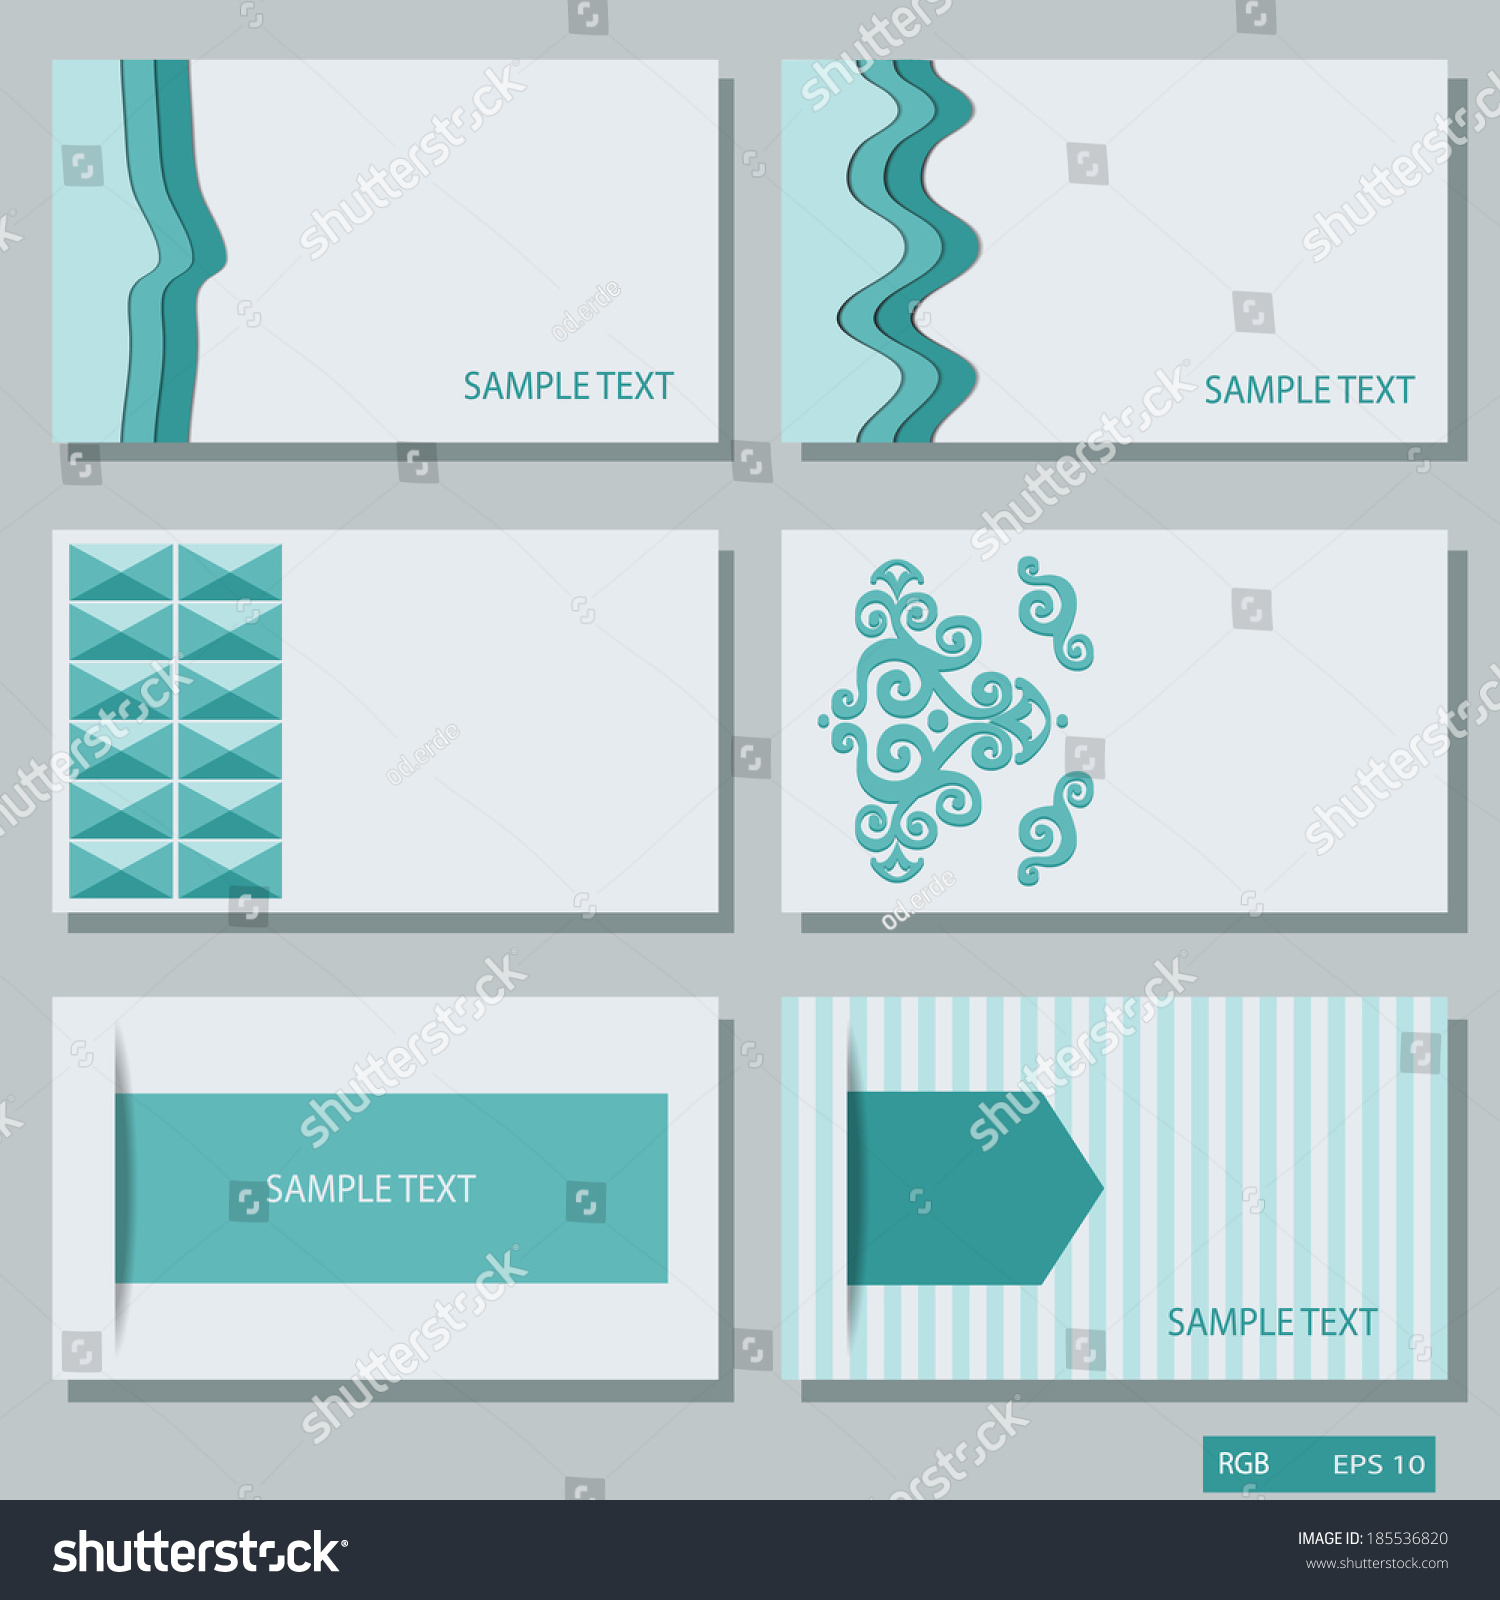 Business Calling Cards Sample Images - Card Design And Card Template